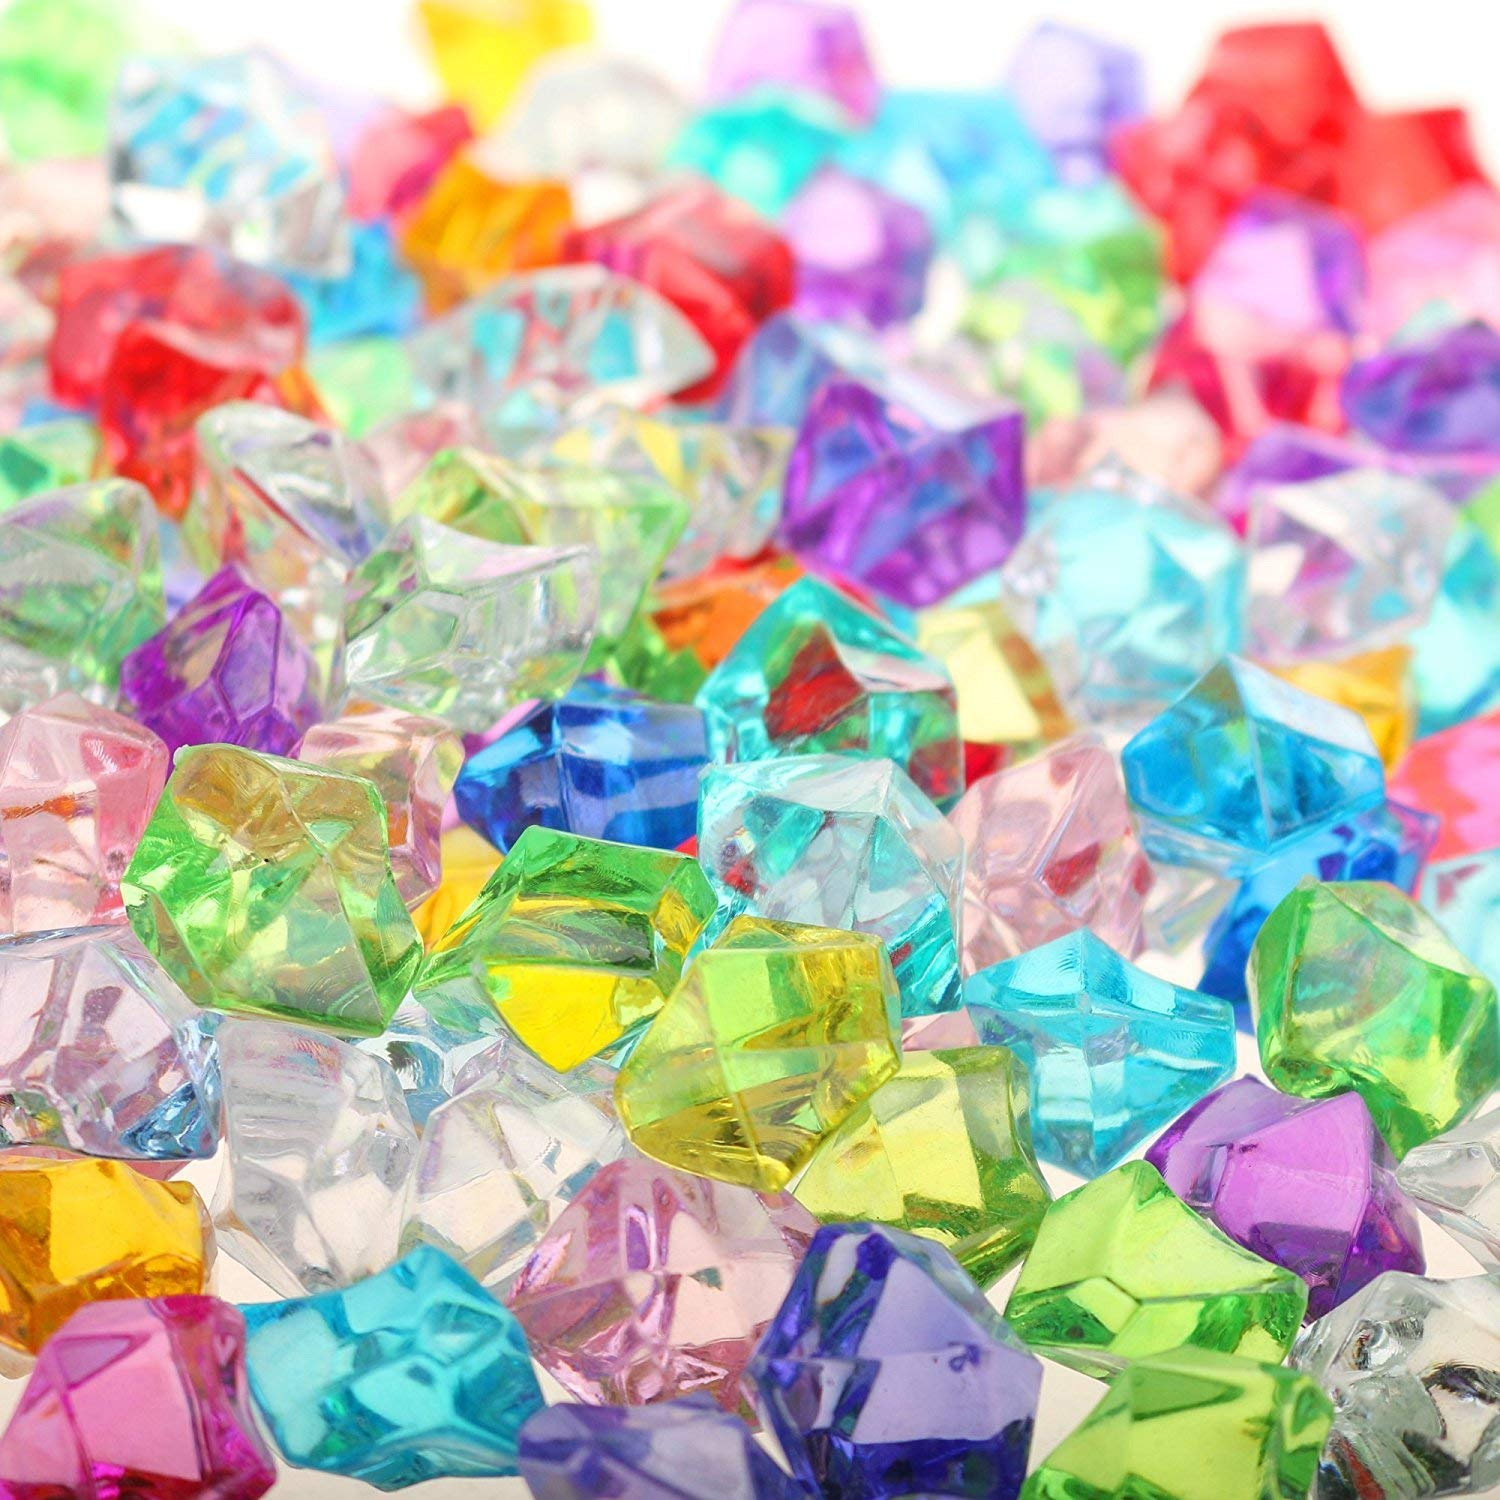 Pack of 120 Large Acrylic Jewels Gems for Kids Collage /& Card Making Childrens Arts and Crafts Embellishment